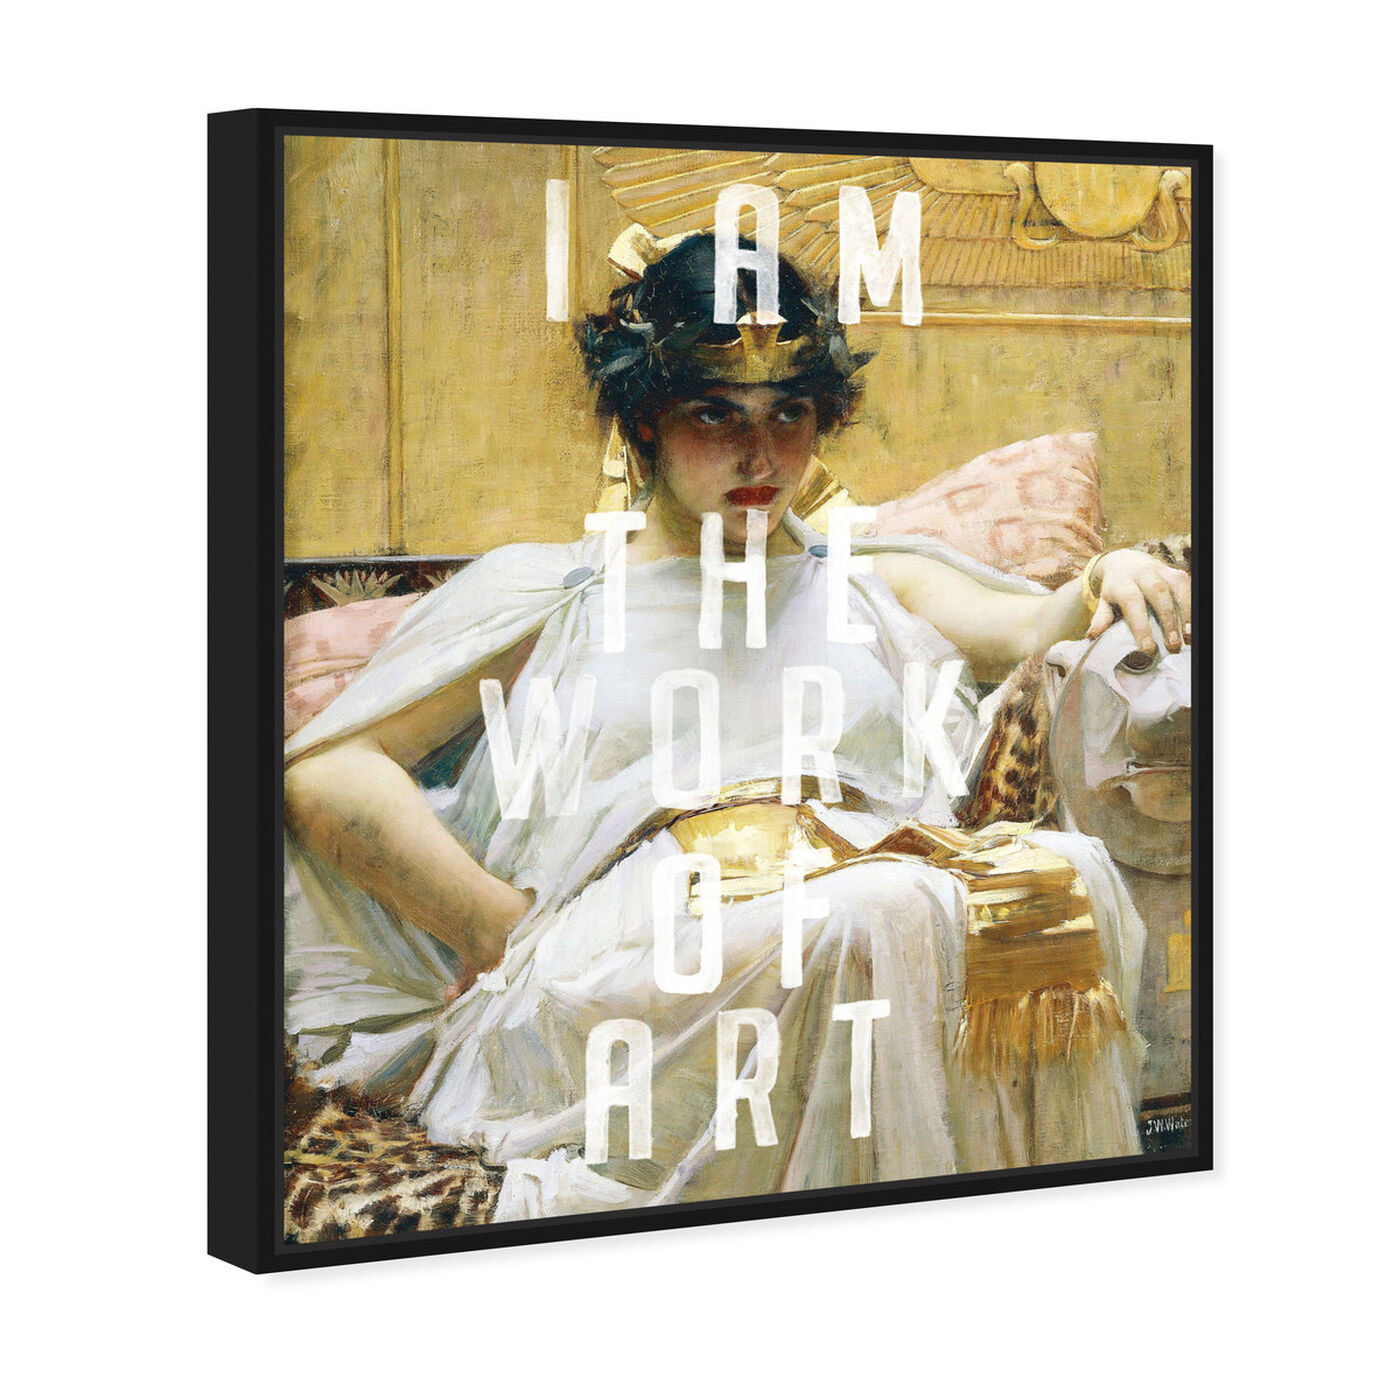 Angled view of I AM ART featuring classic and figurative and classic art.